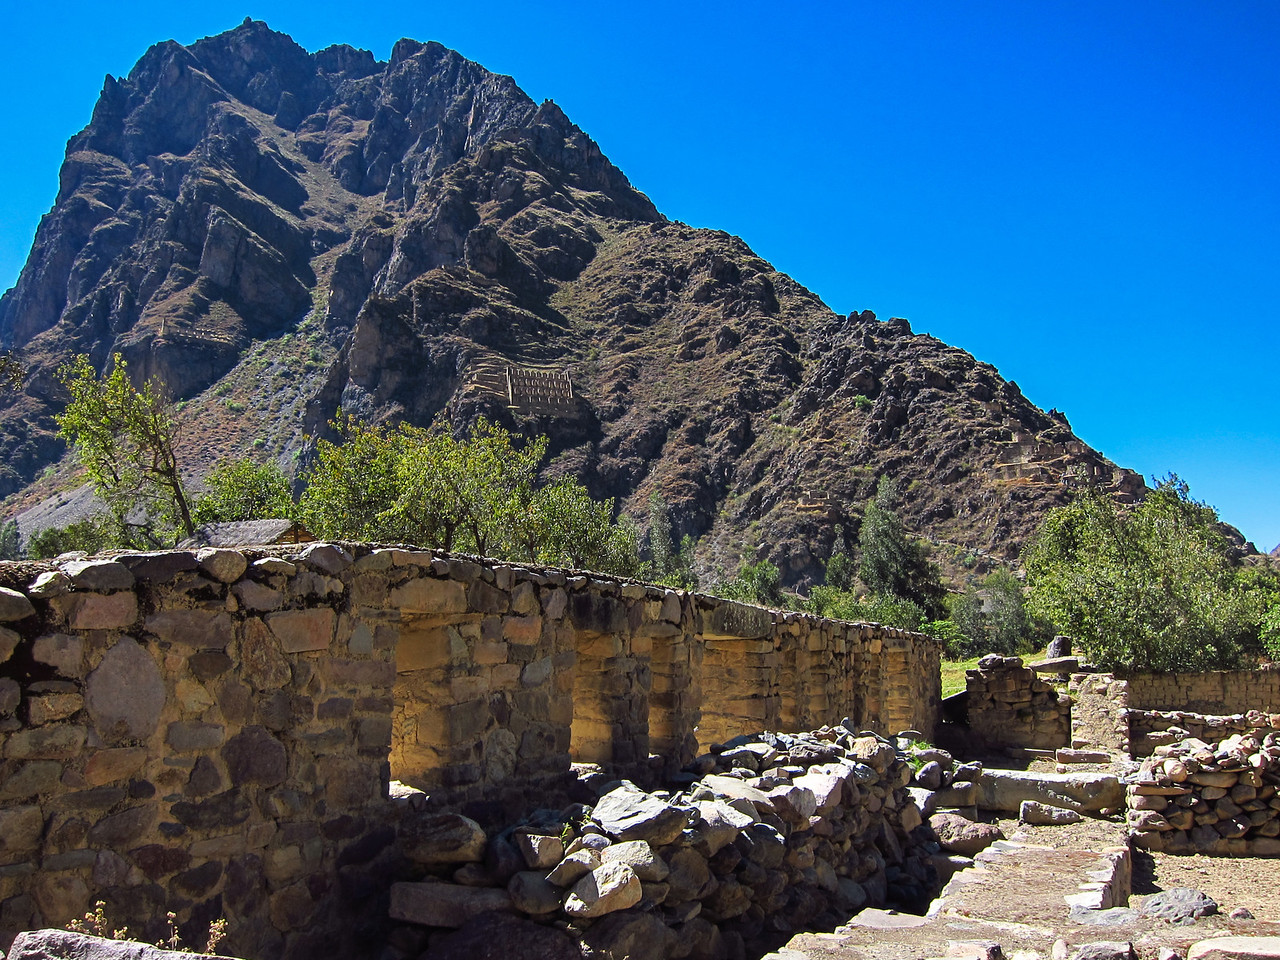 Ollantaytambo ruins and the granary built into the side of the mountain.